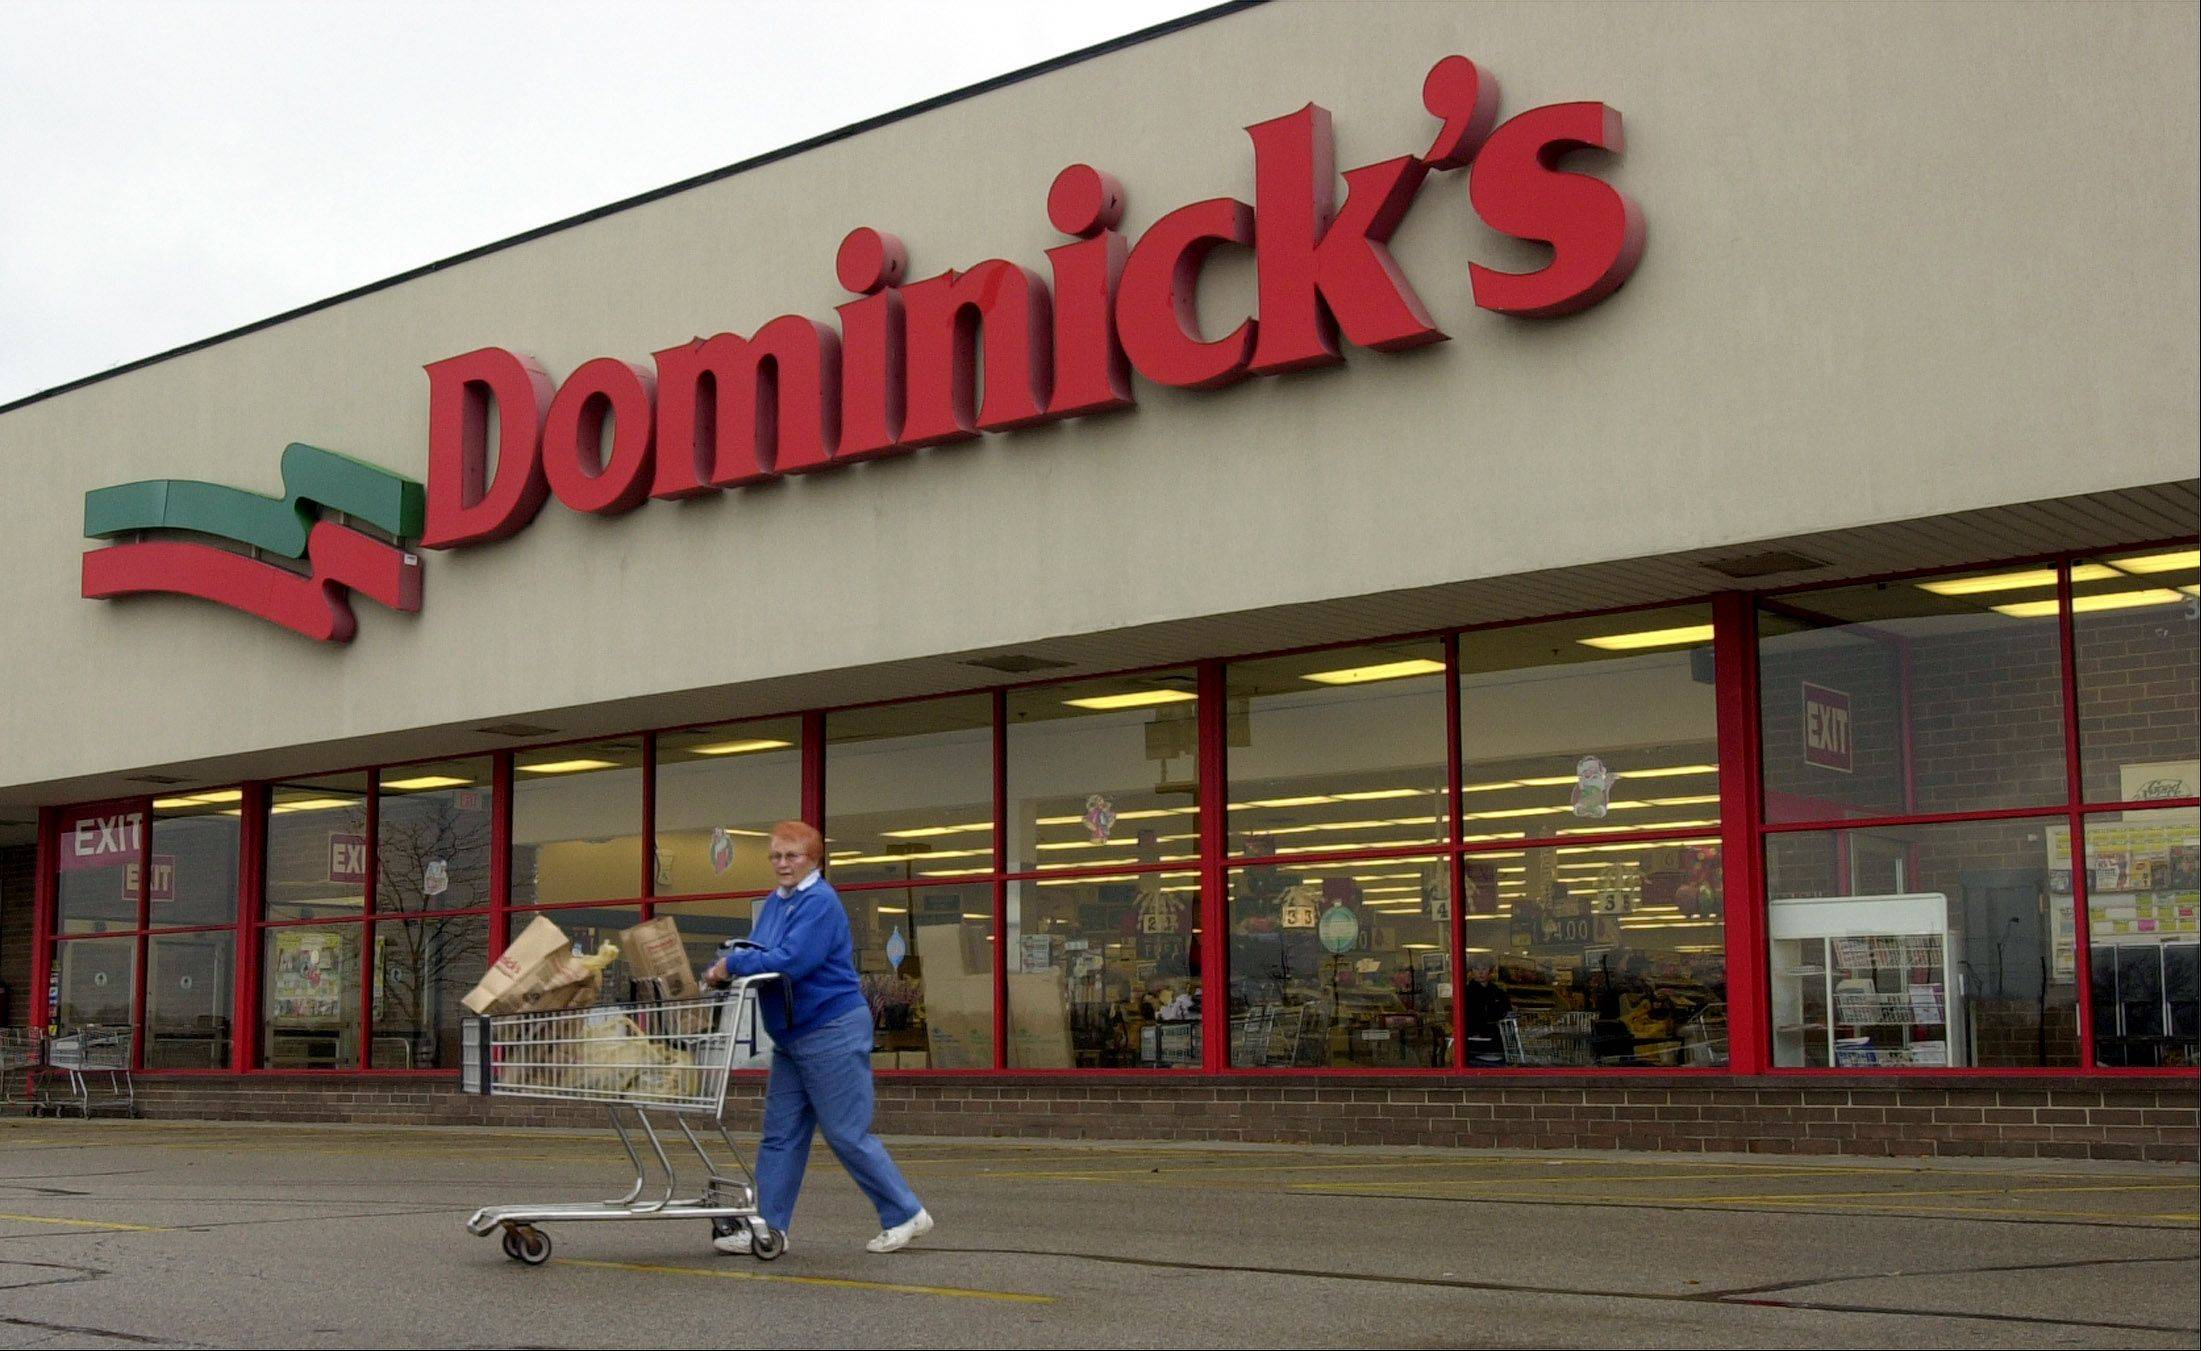 Safeway is the parent company of the Dominick�s grocery store chain.